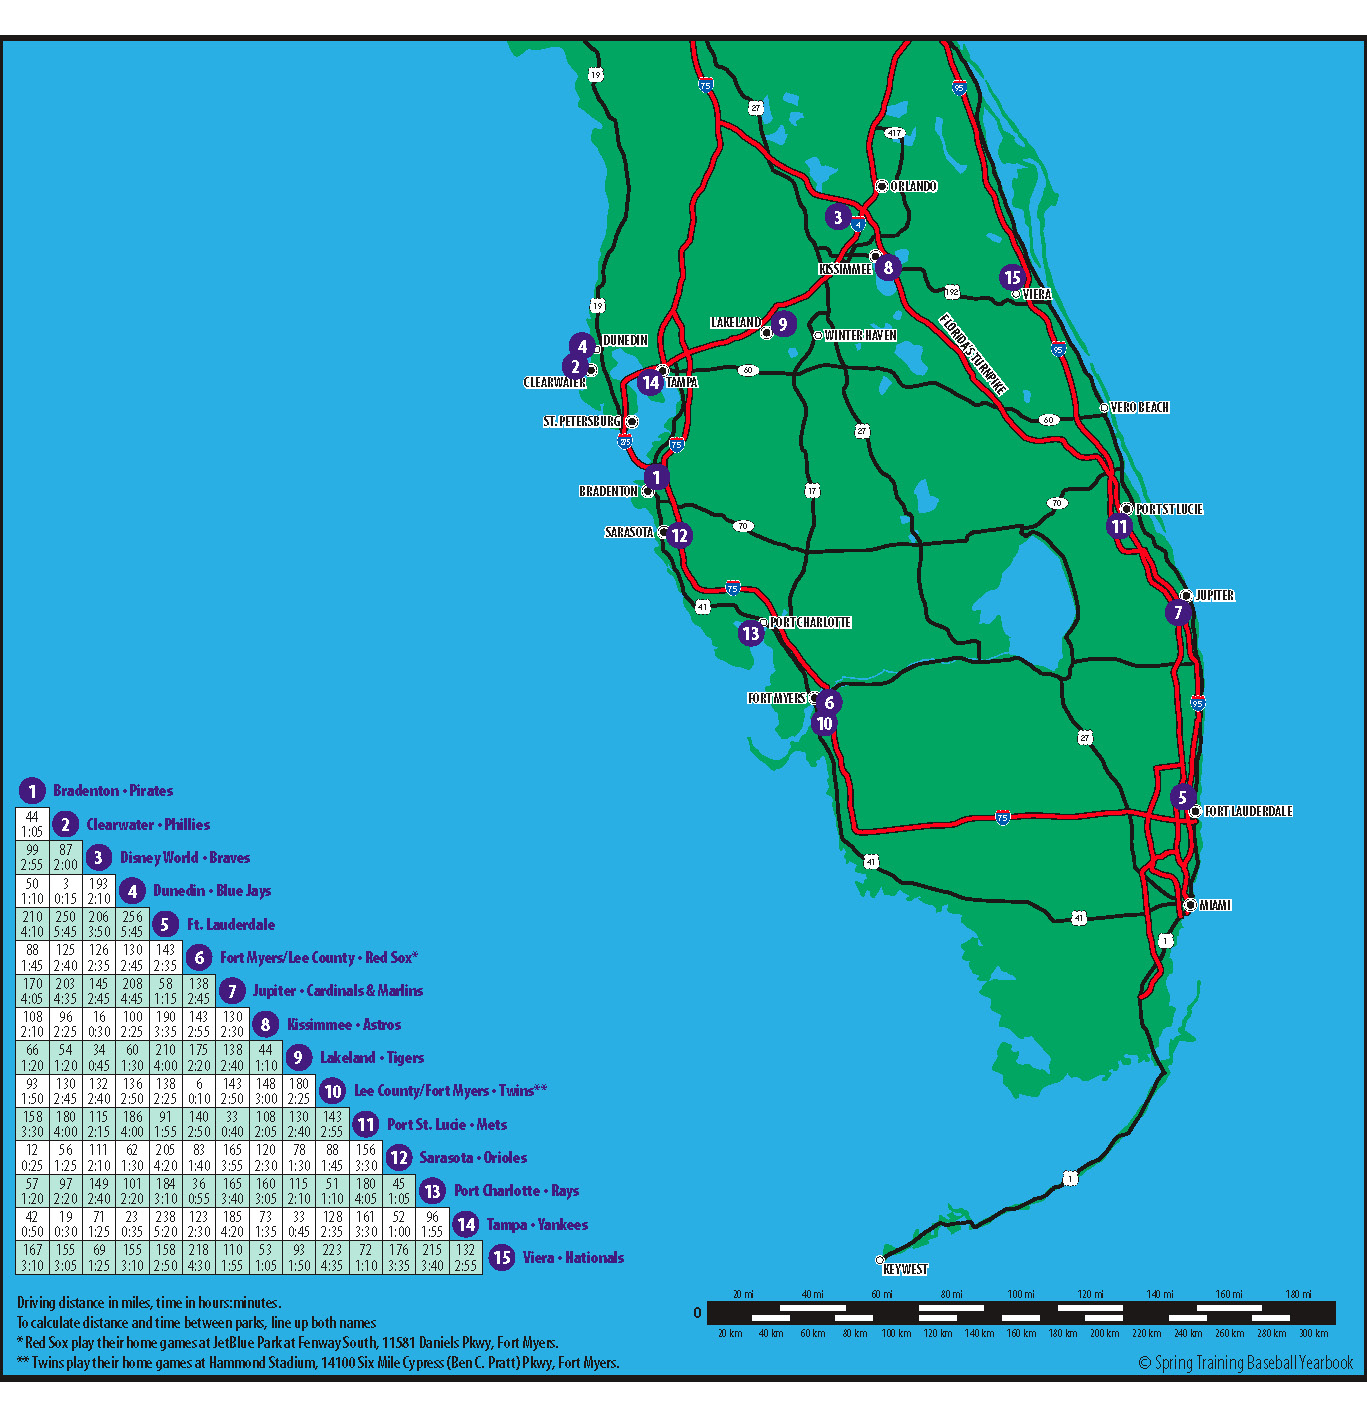 Spring Training Online: Complete Guide To Spring Training 2012 - Florida Spring Training Map